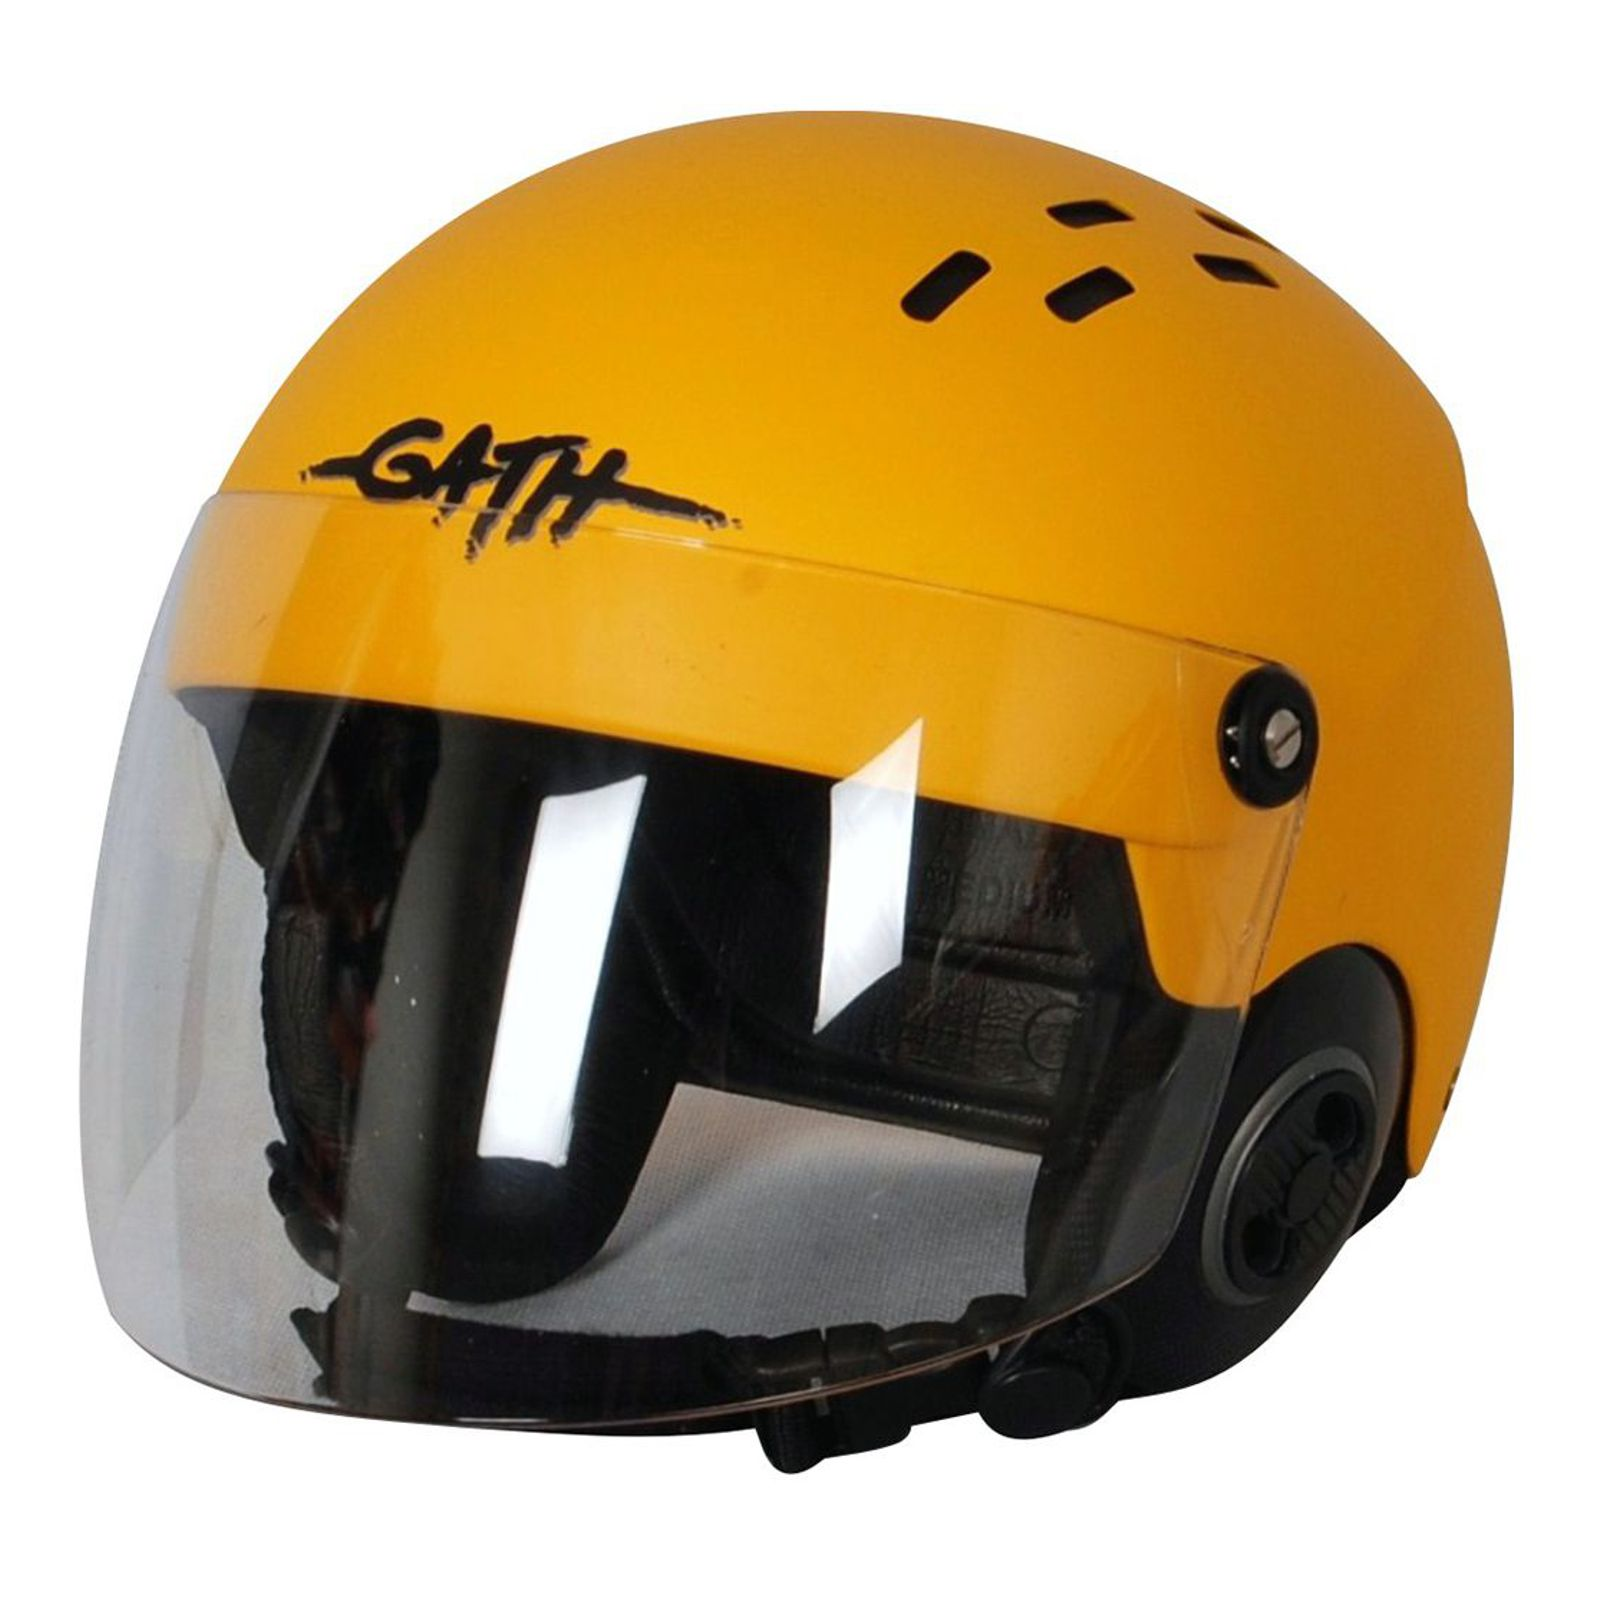 GATH Helm RESCUE Safety Gelb matt Gr XL mit klarem Vollvisier